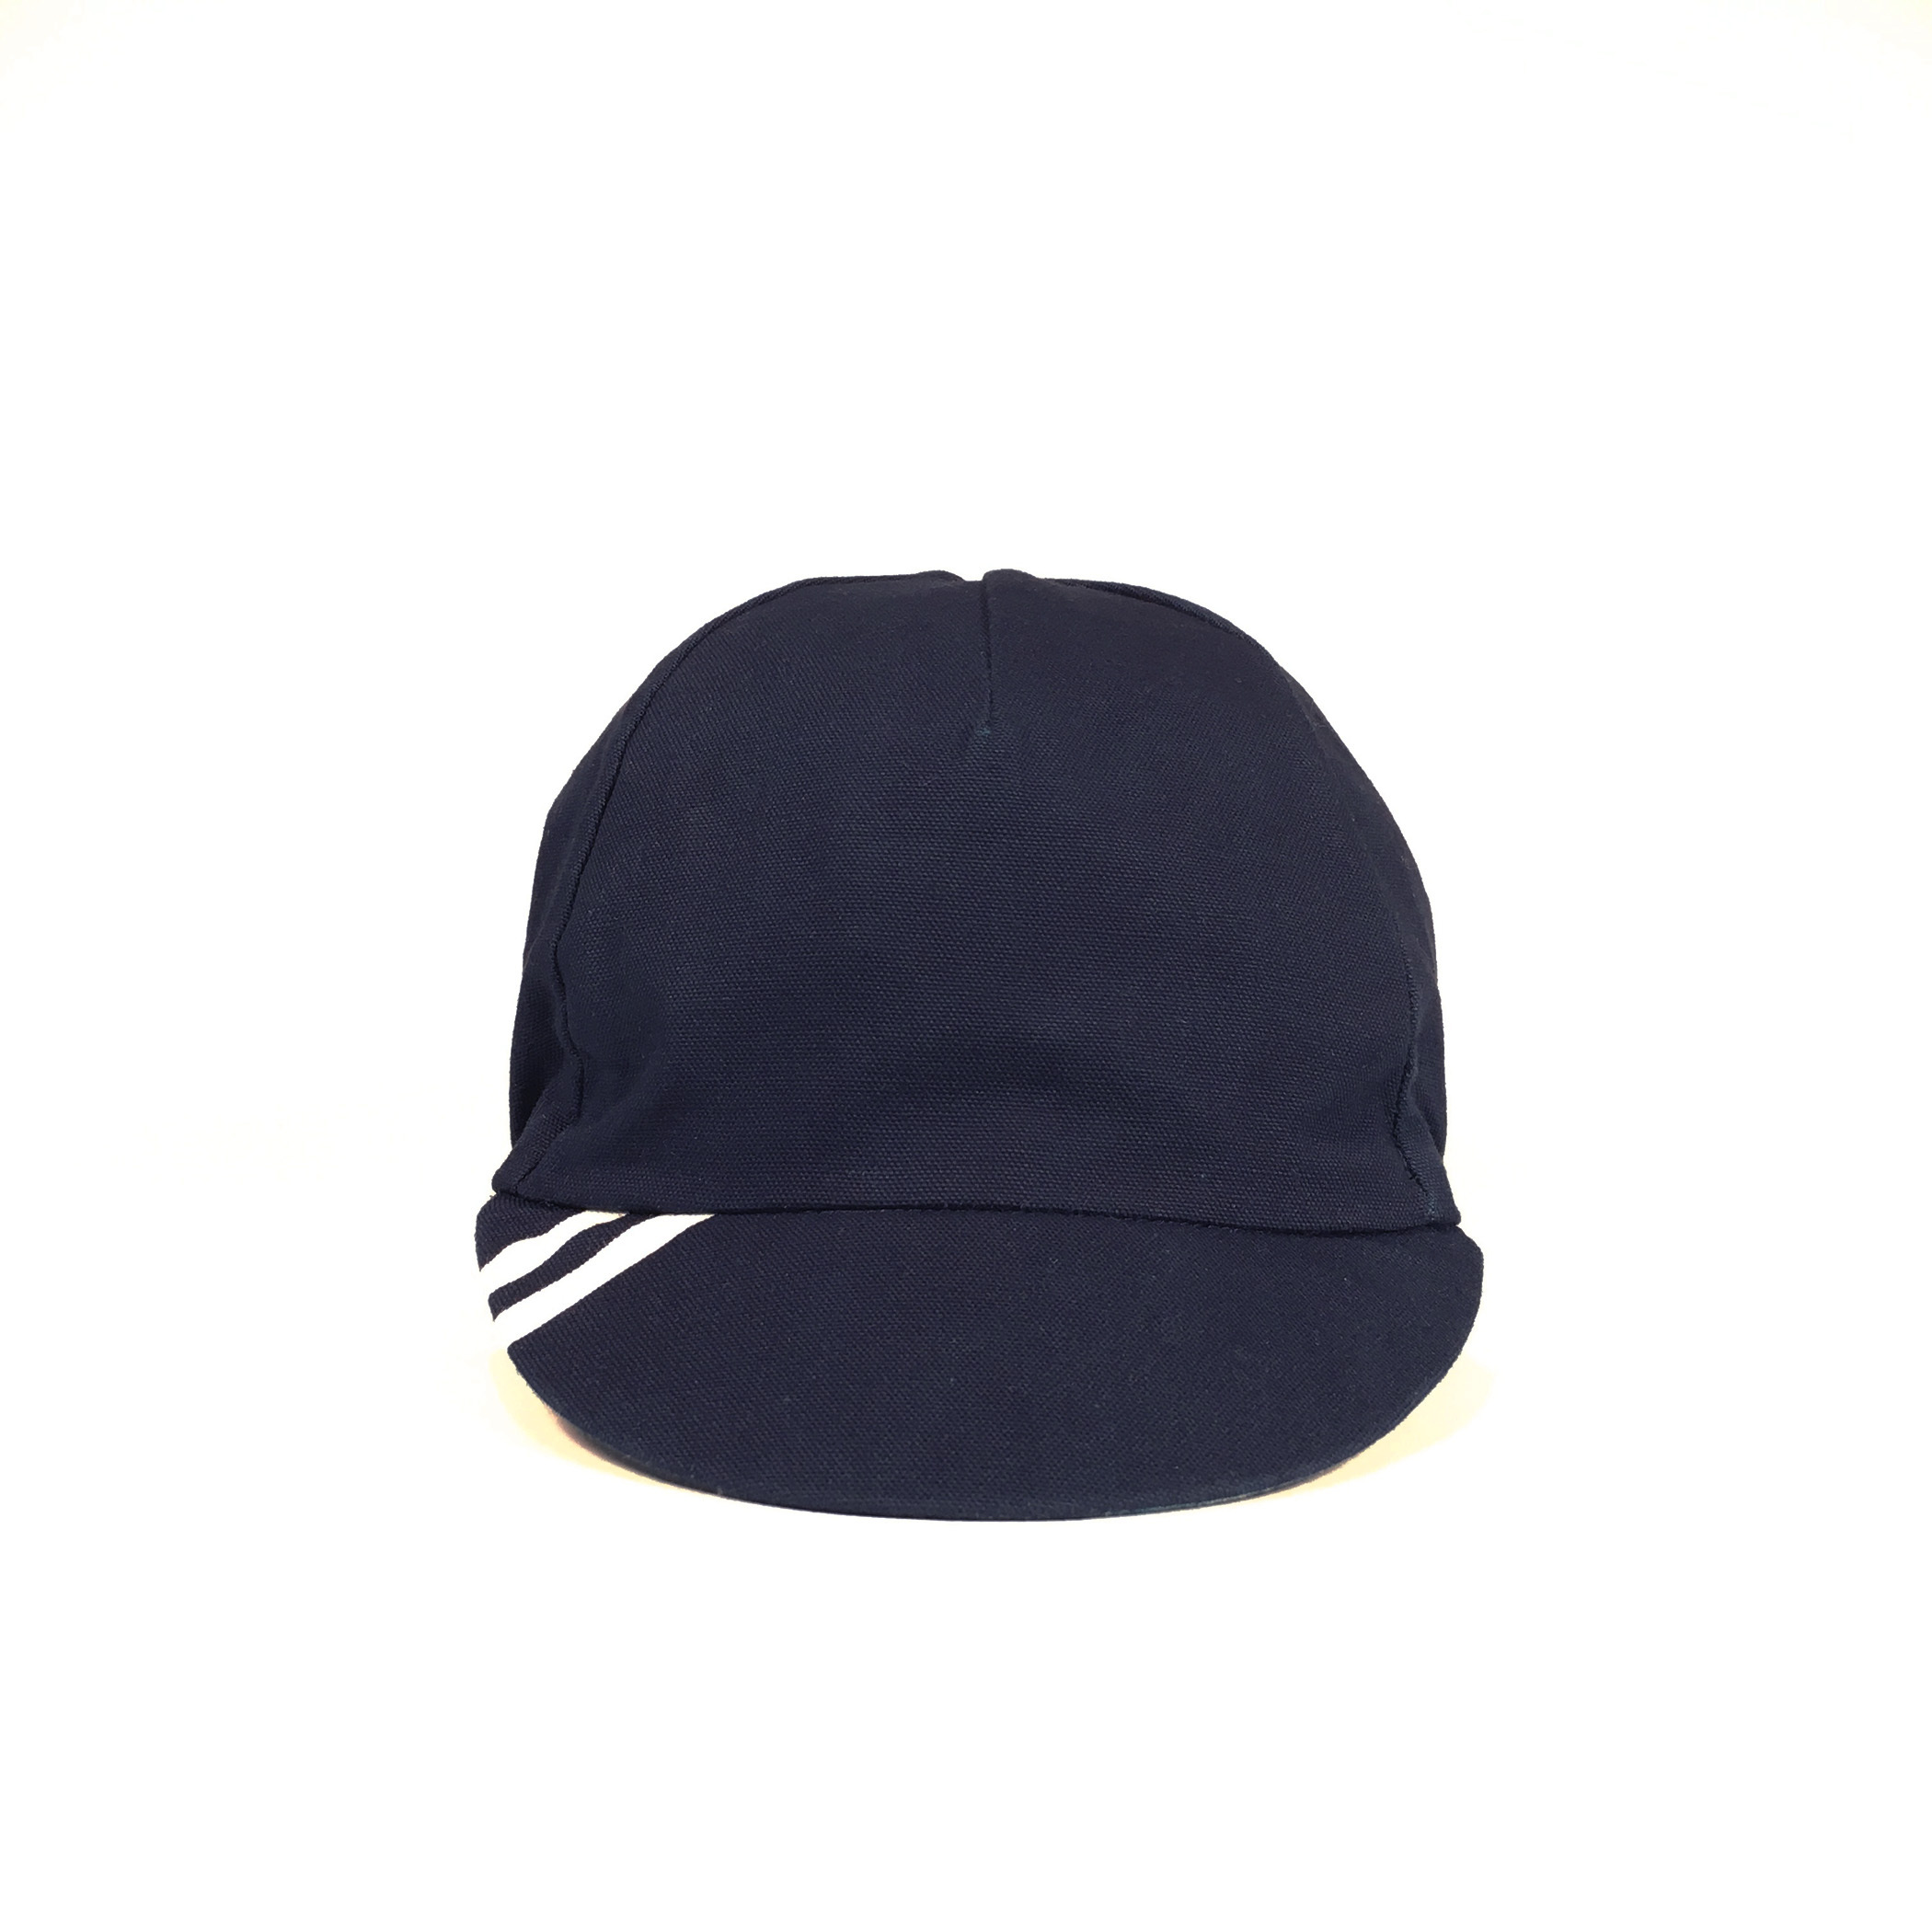 Natural indigo cycle cap Type-1